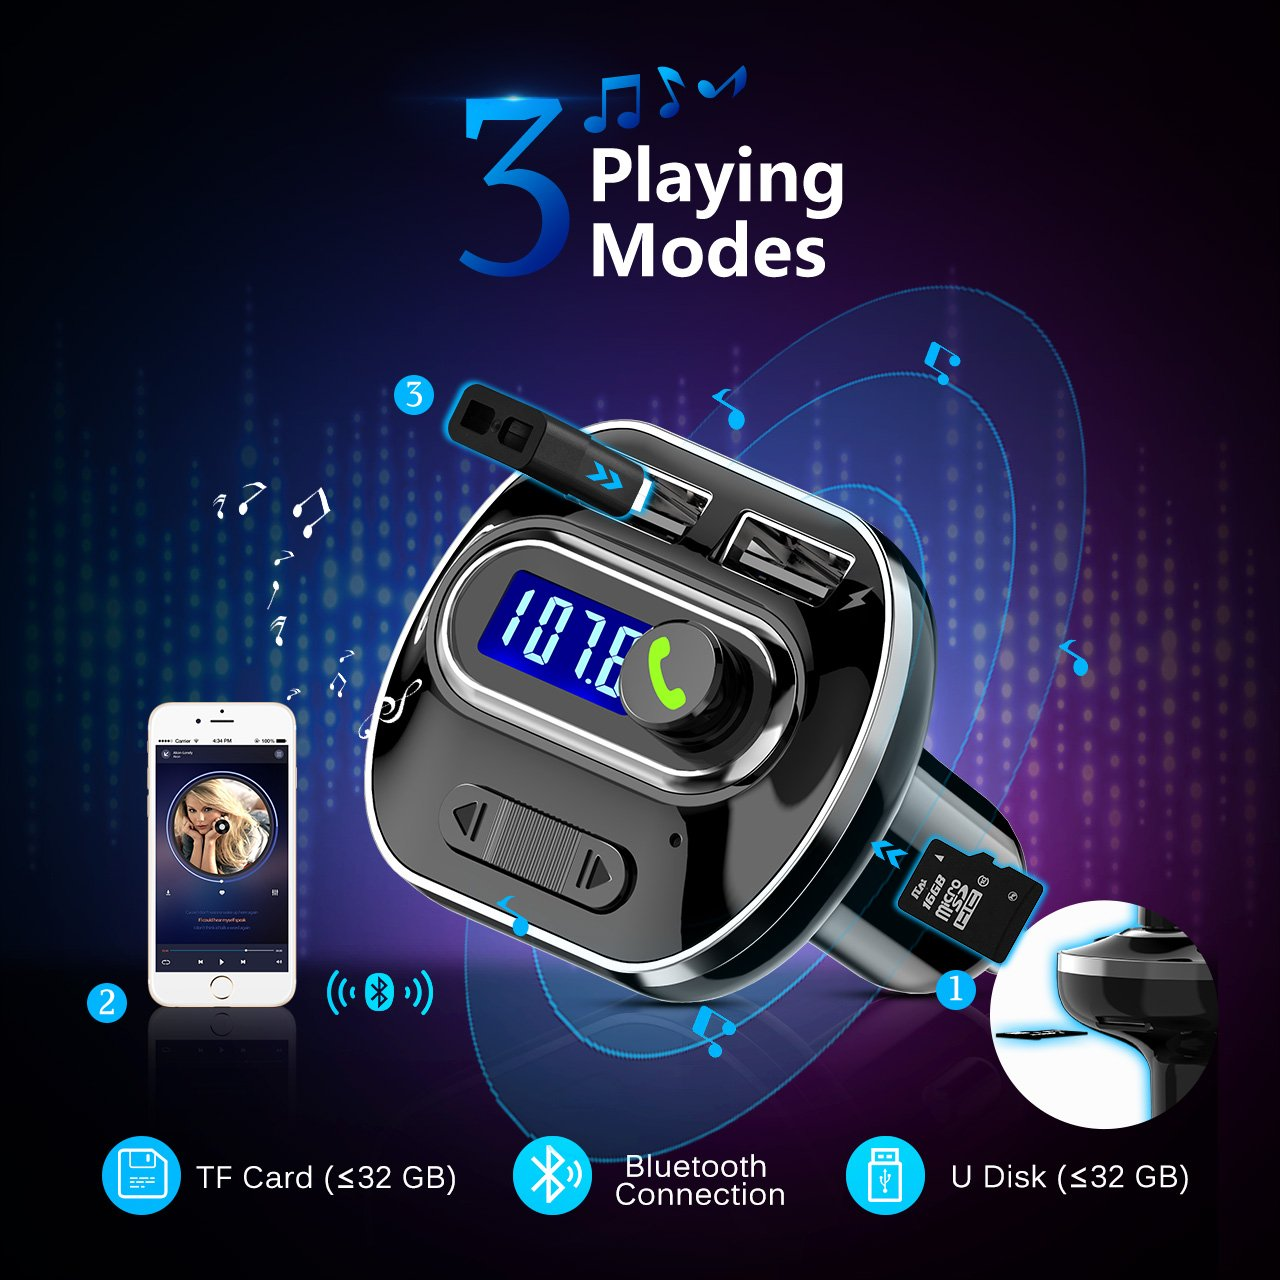 Victsing 41 Bluetooth Fm Transmitter For Car Hands Free Kit Bt20 Dual Usb Charger Mp3 Wma Audio Call 5v 34a Support Tf Card Music Pl Supports Aux Output And U Disk Voltage Detection Black